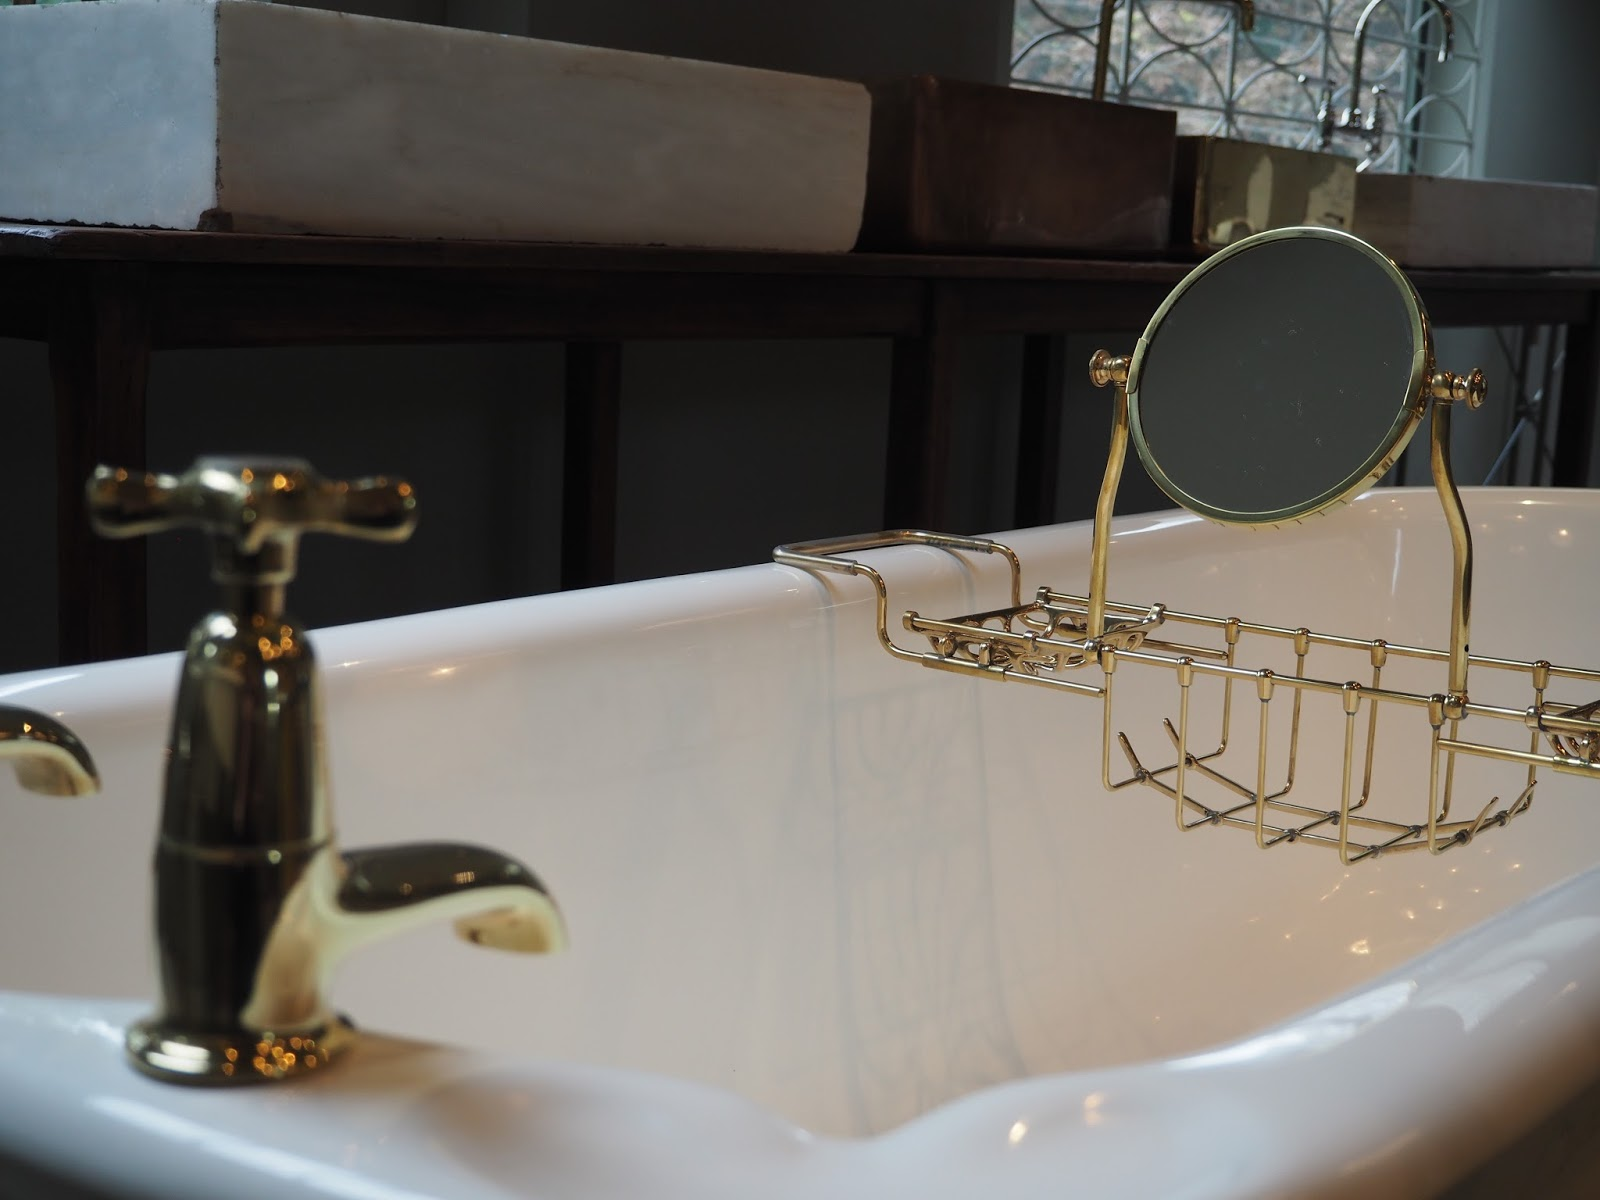 bathroom fixtures and fittings, hellopeagreen blog, bathroom design, traditional bathroom accessories, buy vintage bath